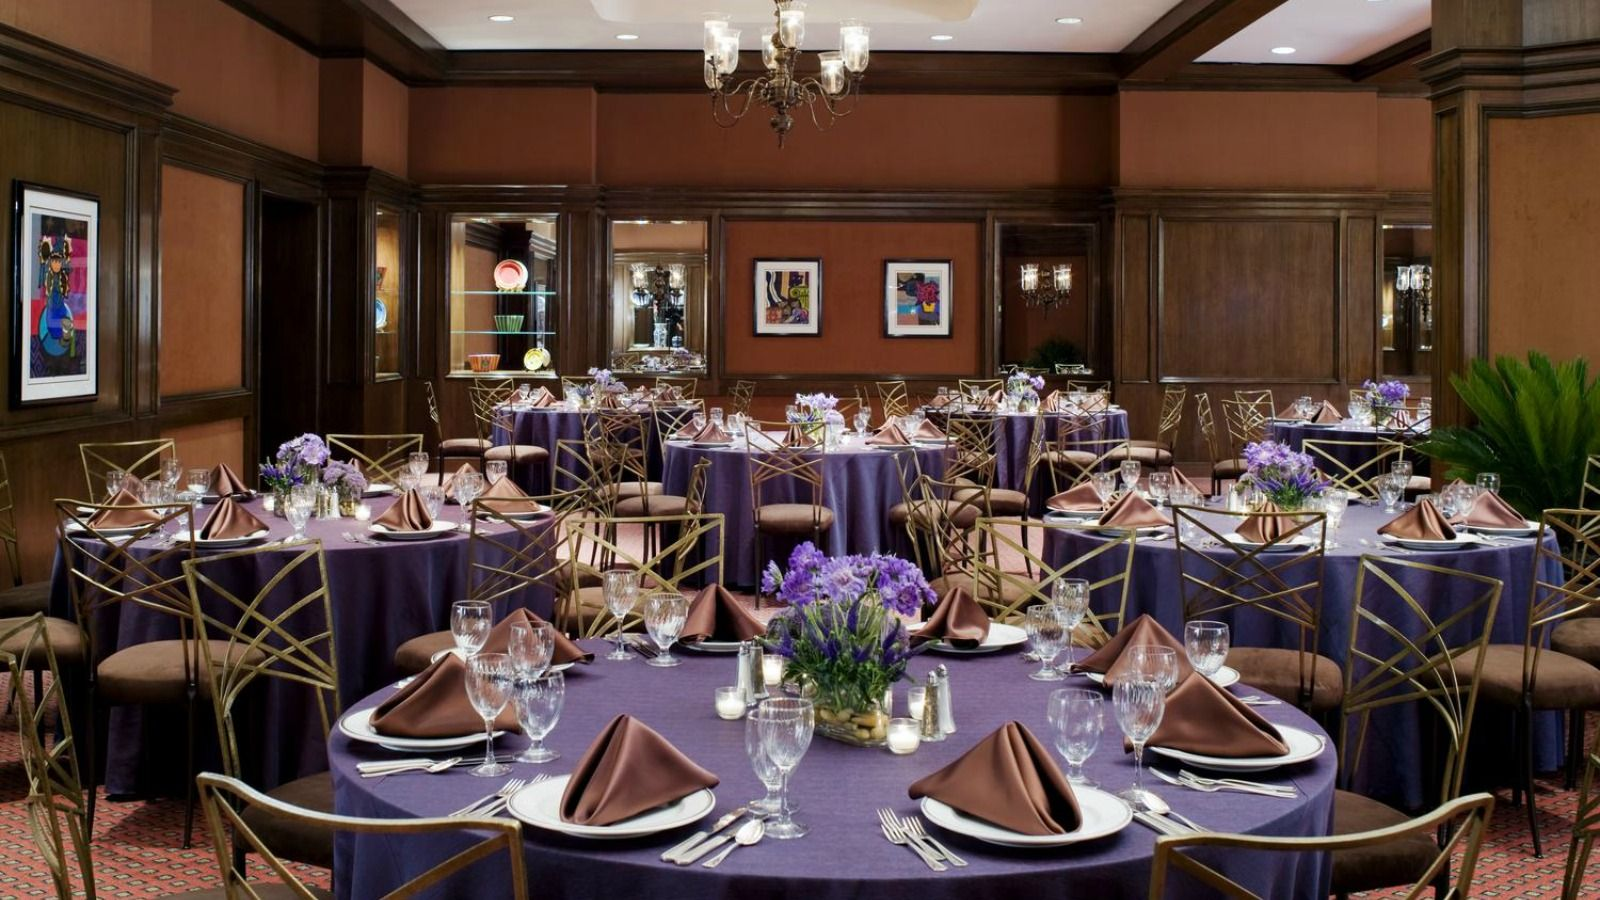 Start Your Wedding Weekend In Style With A Private Rehearsal Dinner One Of Our Ballroom Venues Or At The Kitchen Table Onsite Restaurant